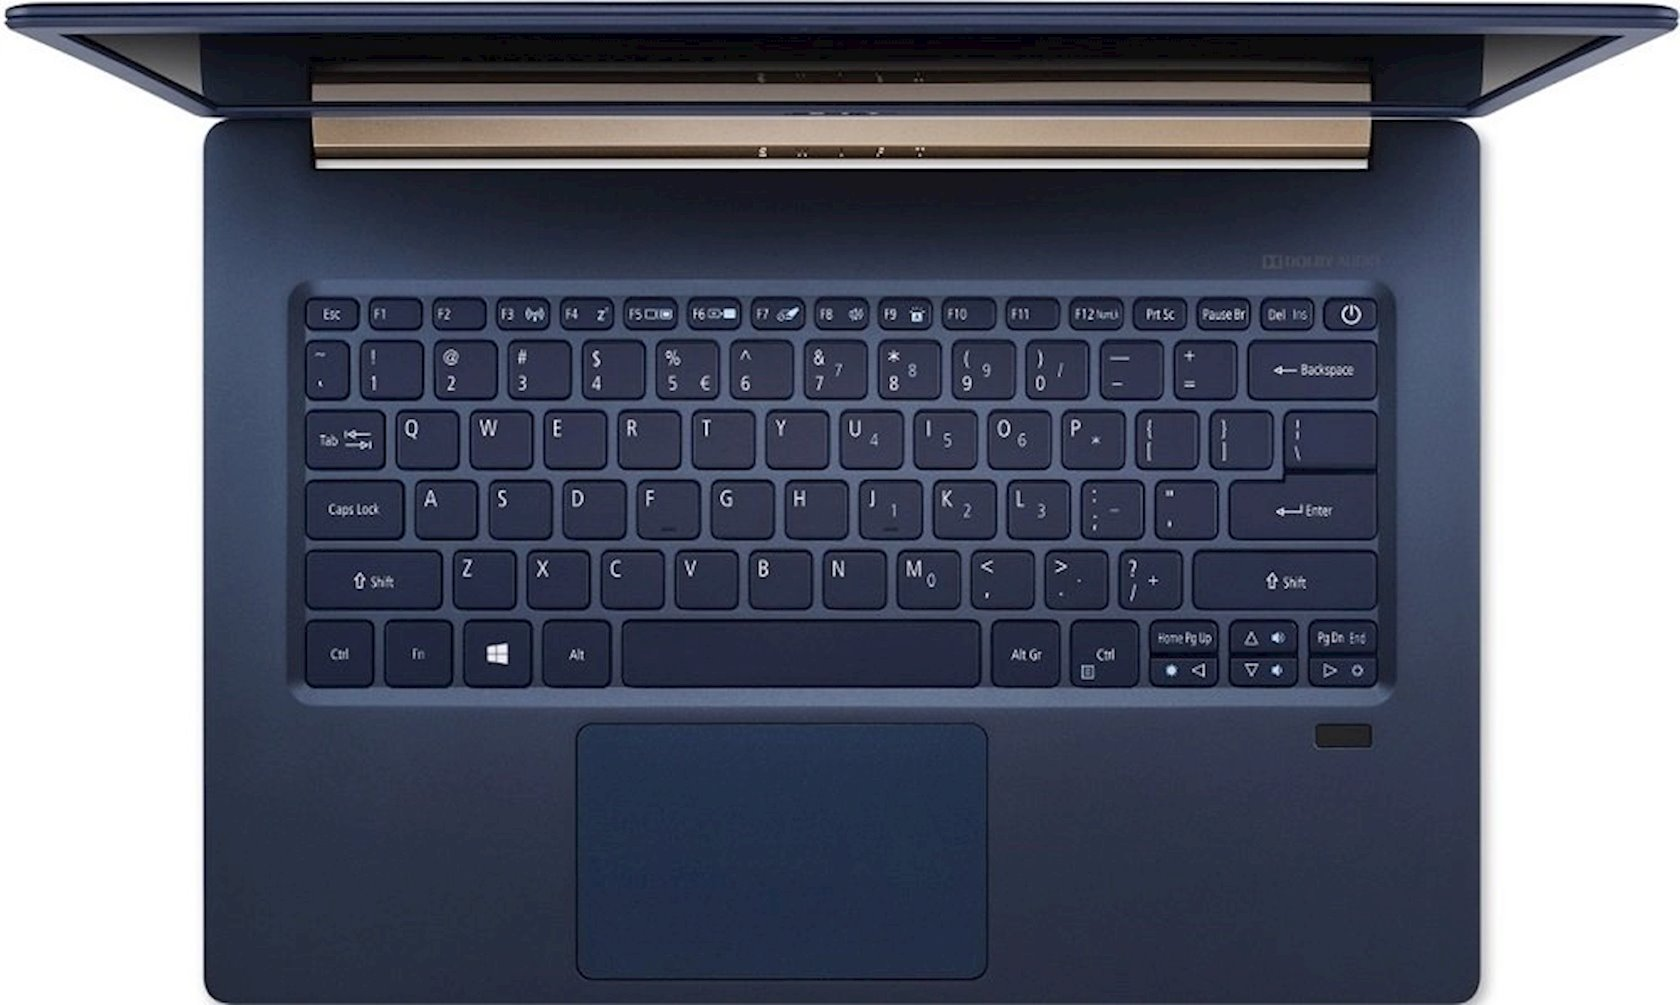 Noutbuk Acer Swift 5 SF514-53T-5105 Touch Blue (NX.H7HER.001)